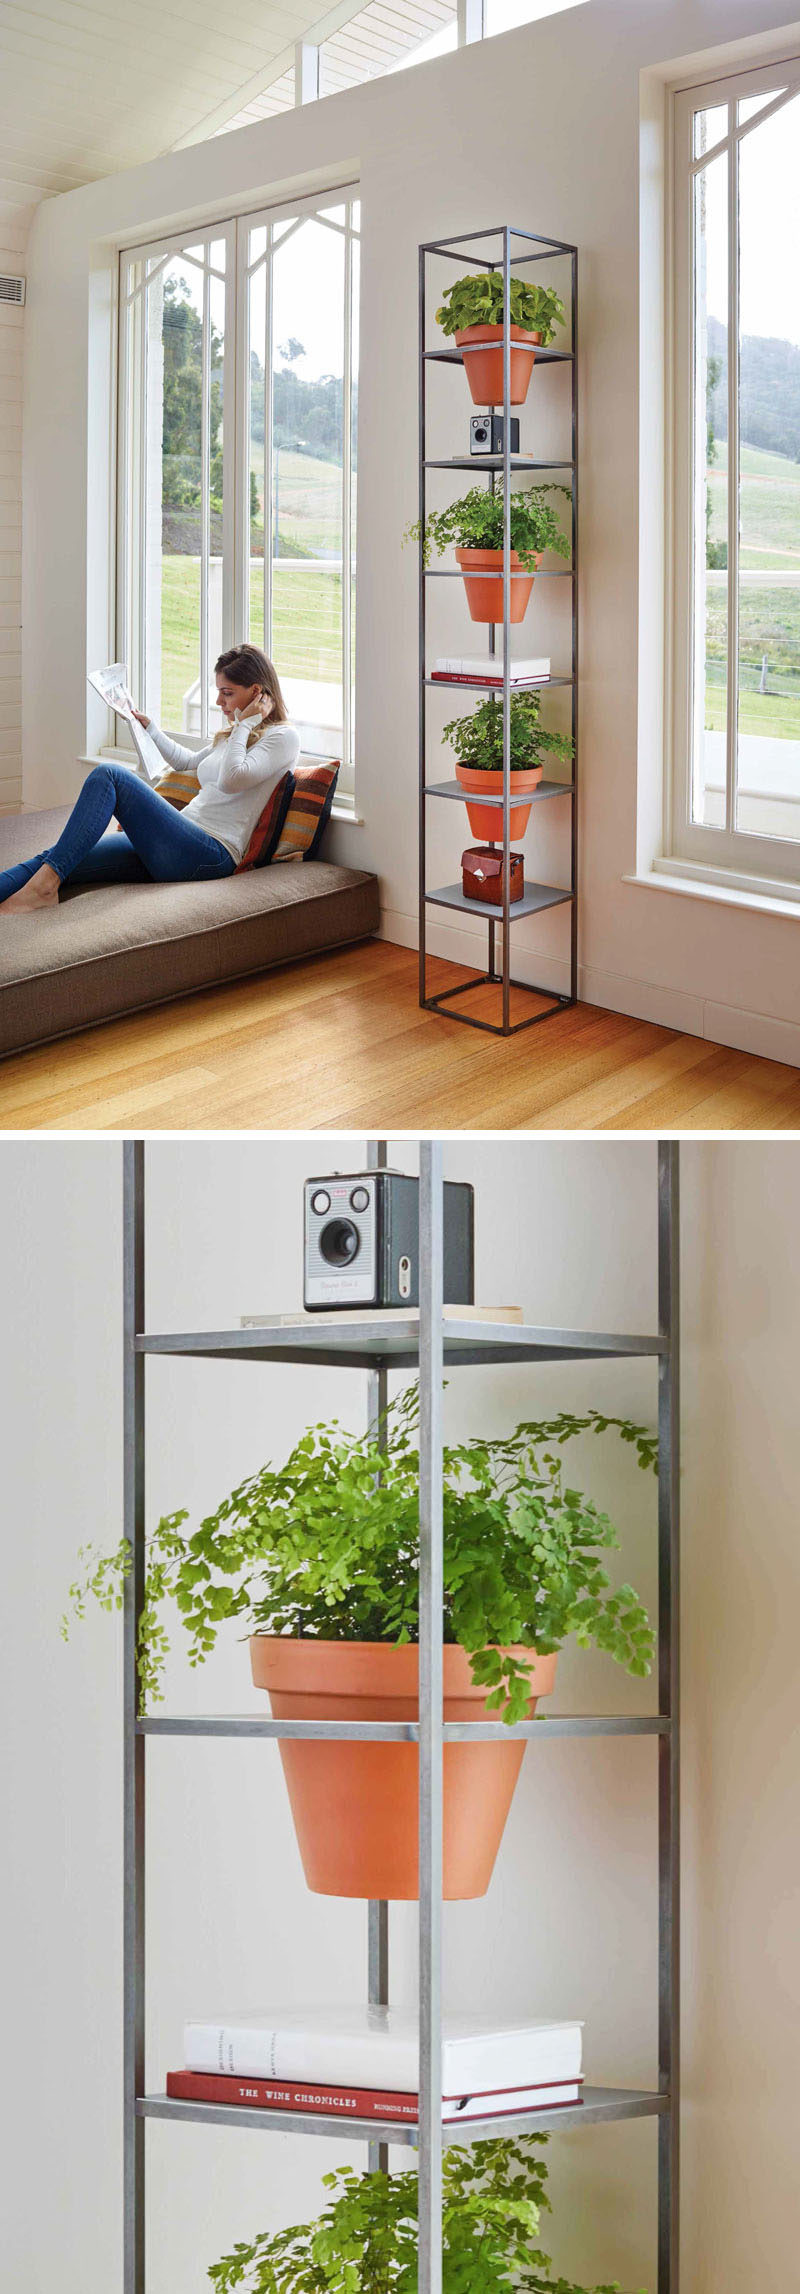 This standalone room divider is perfect for creating a vertical garden to show off your plants and decor.